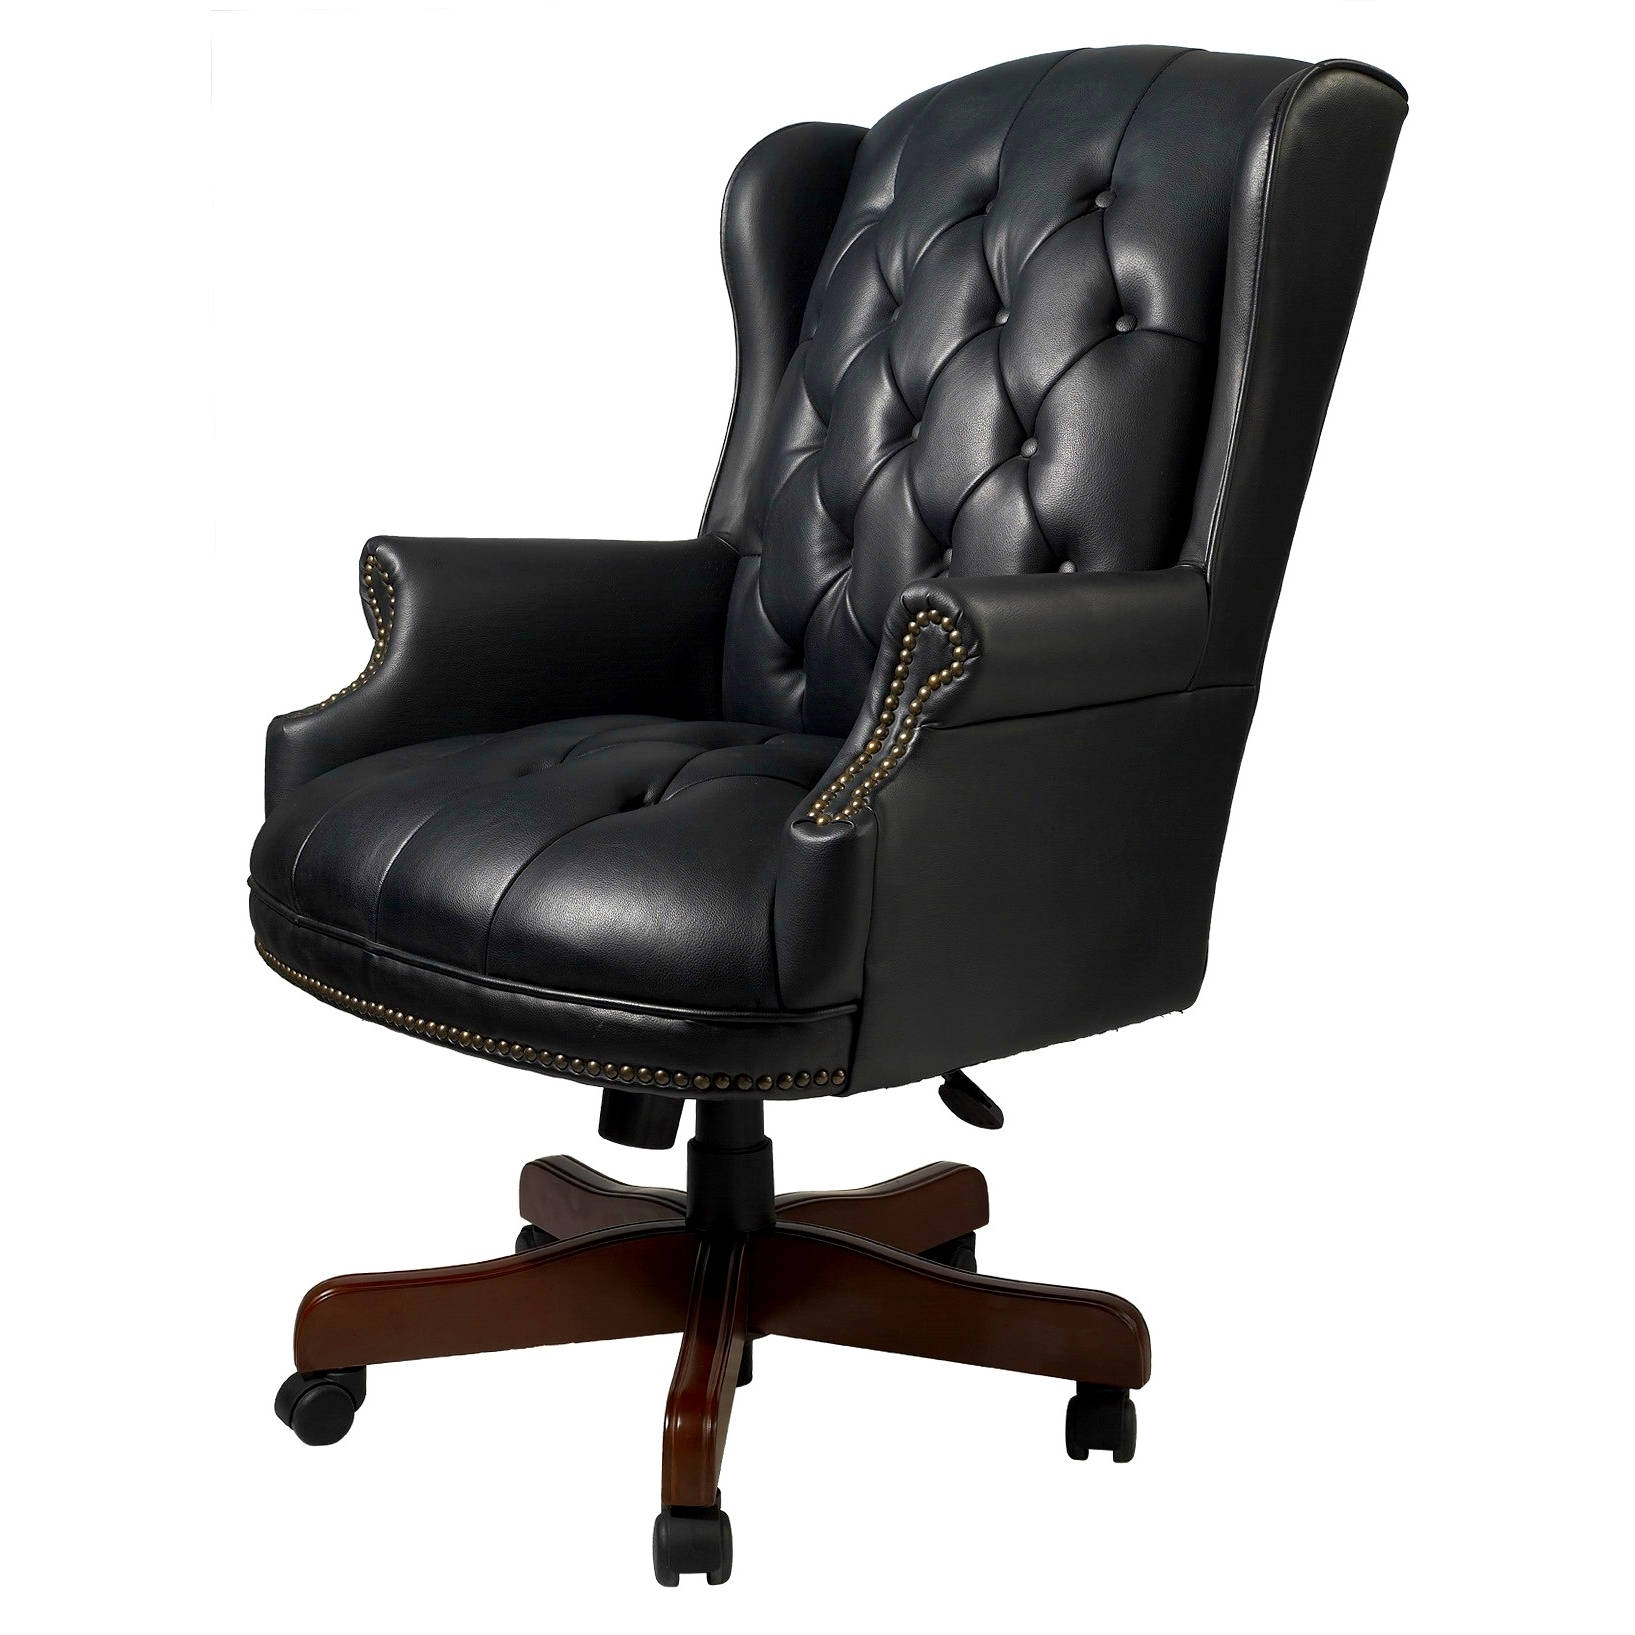 Well Liked Office Chairs Amazon Prime Tags : 77 Office Chairs Image Ideas 99 Inside Executive Office Armchairs (View 19 of 20)